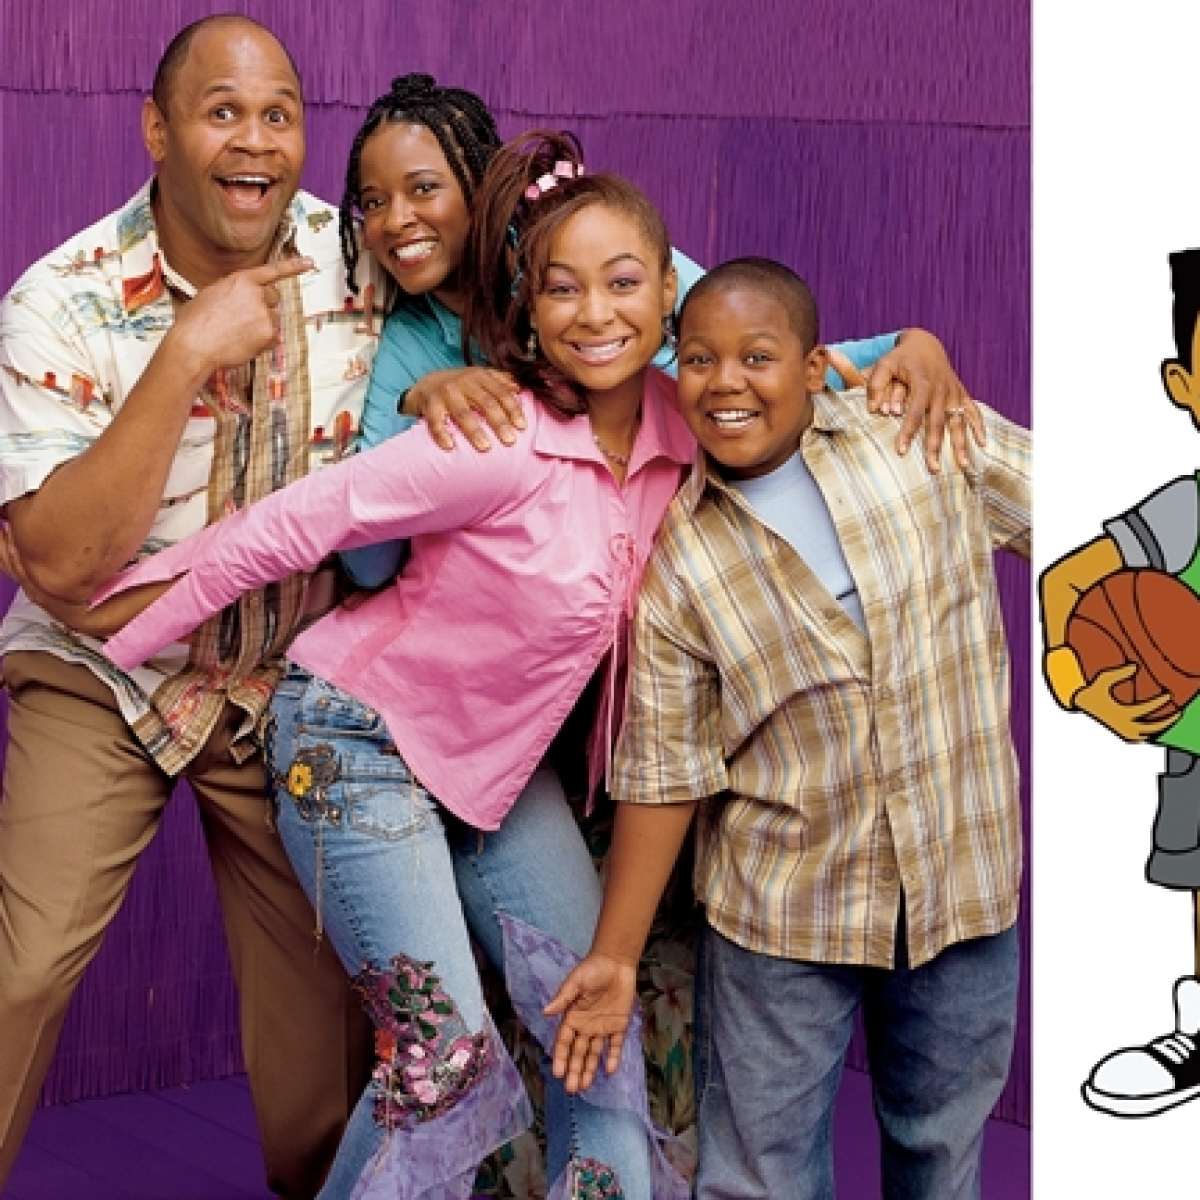 From 'Recess' to 'That's so Raven': 8 Disney shows from the 2000s that are worth a re-run